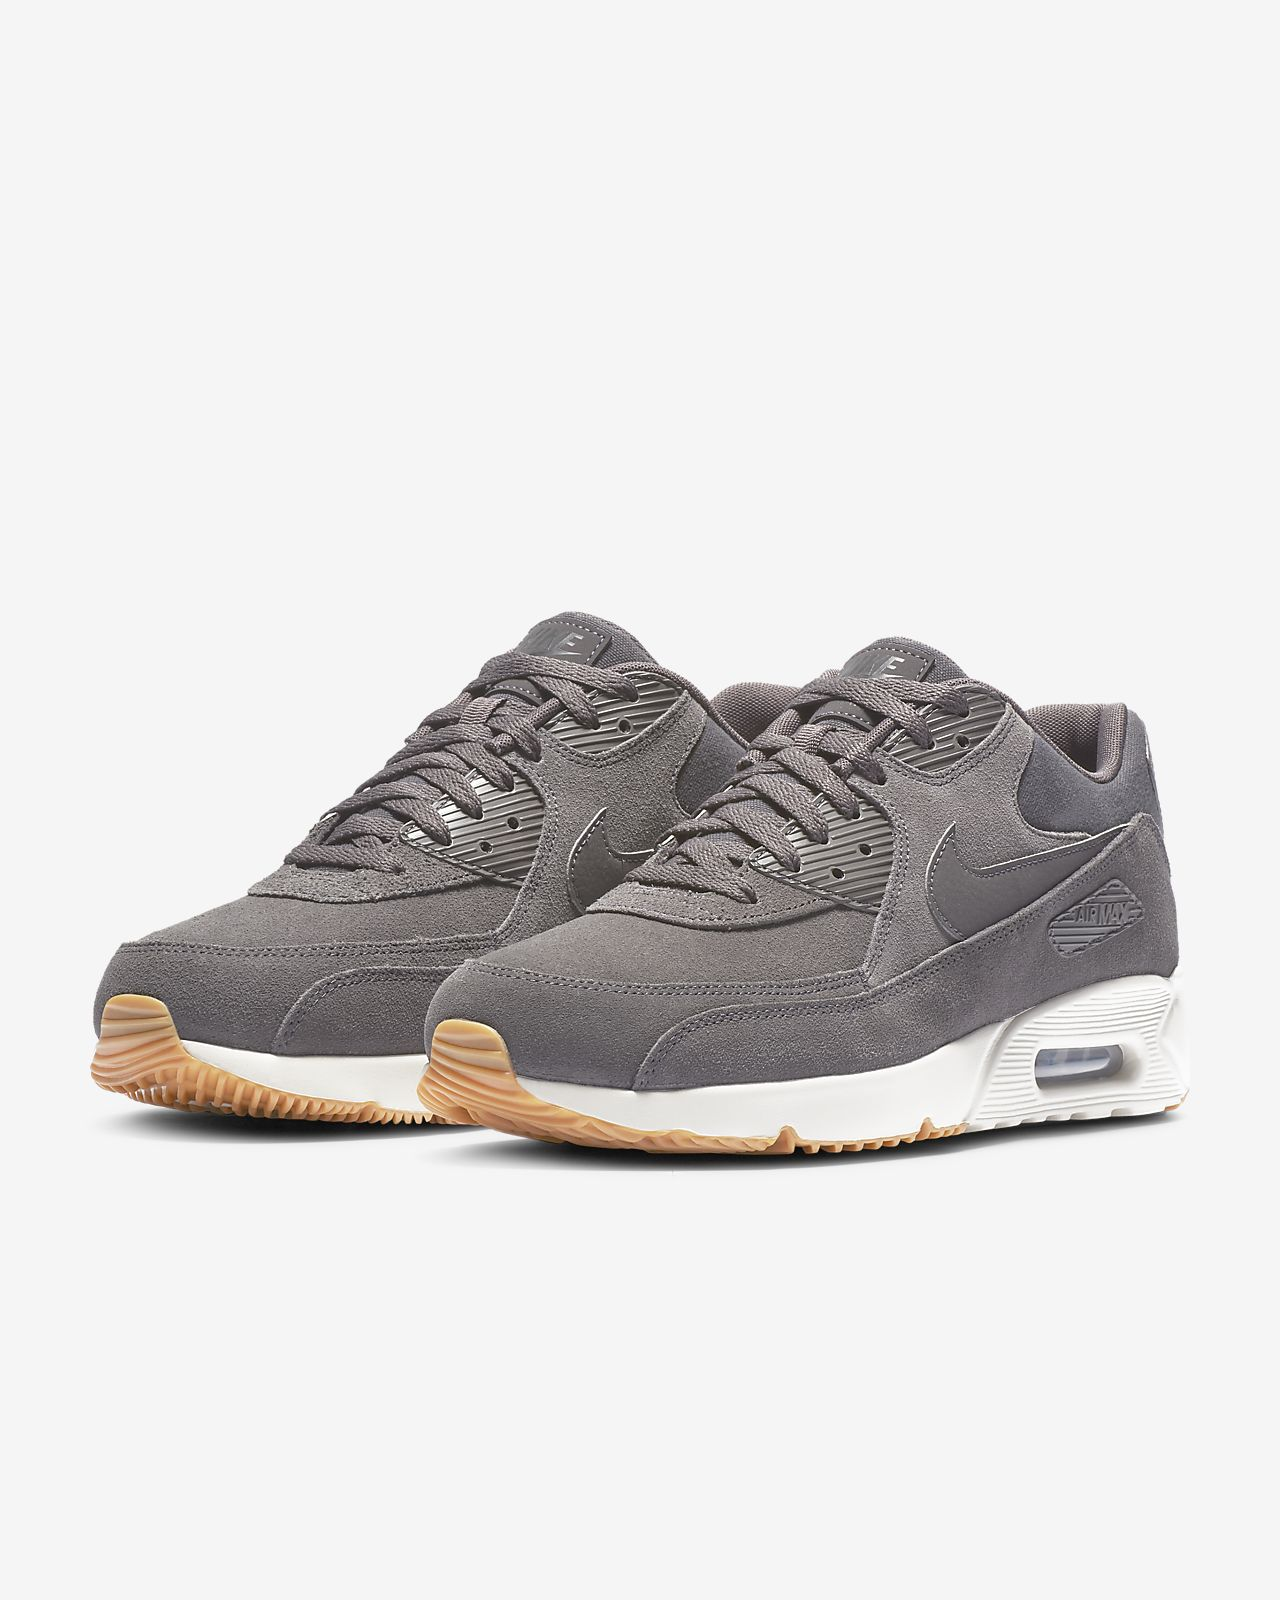 hot sale online 37973 1df56 ... Chaussure Nike Air Max 90 Ultra 2.0 pour Homme